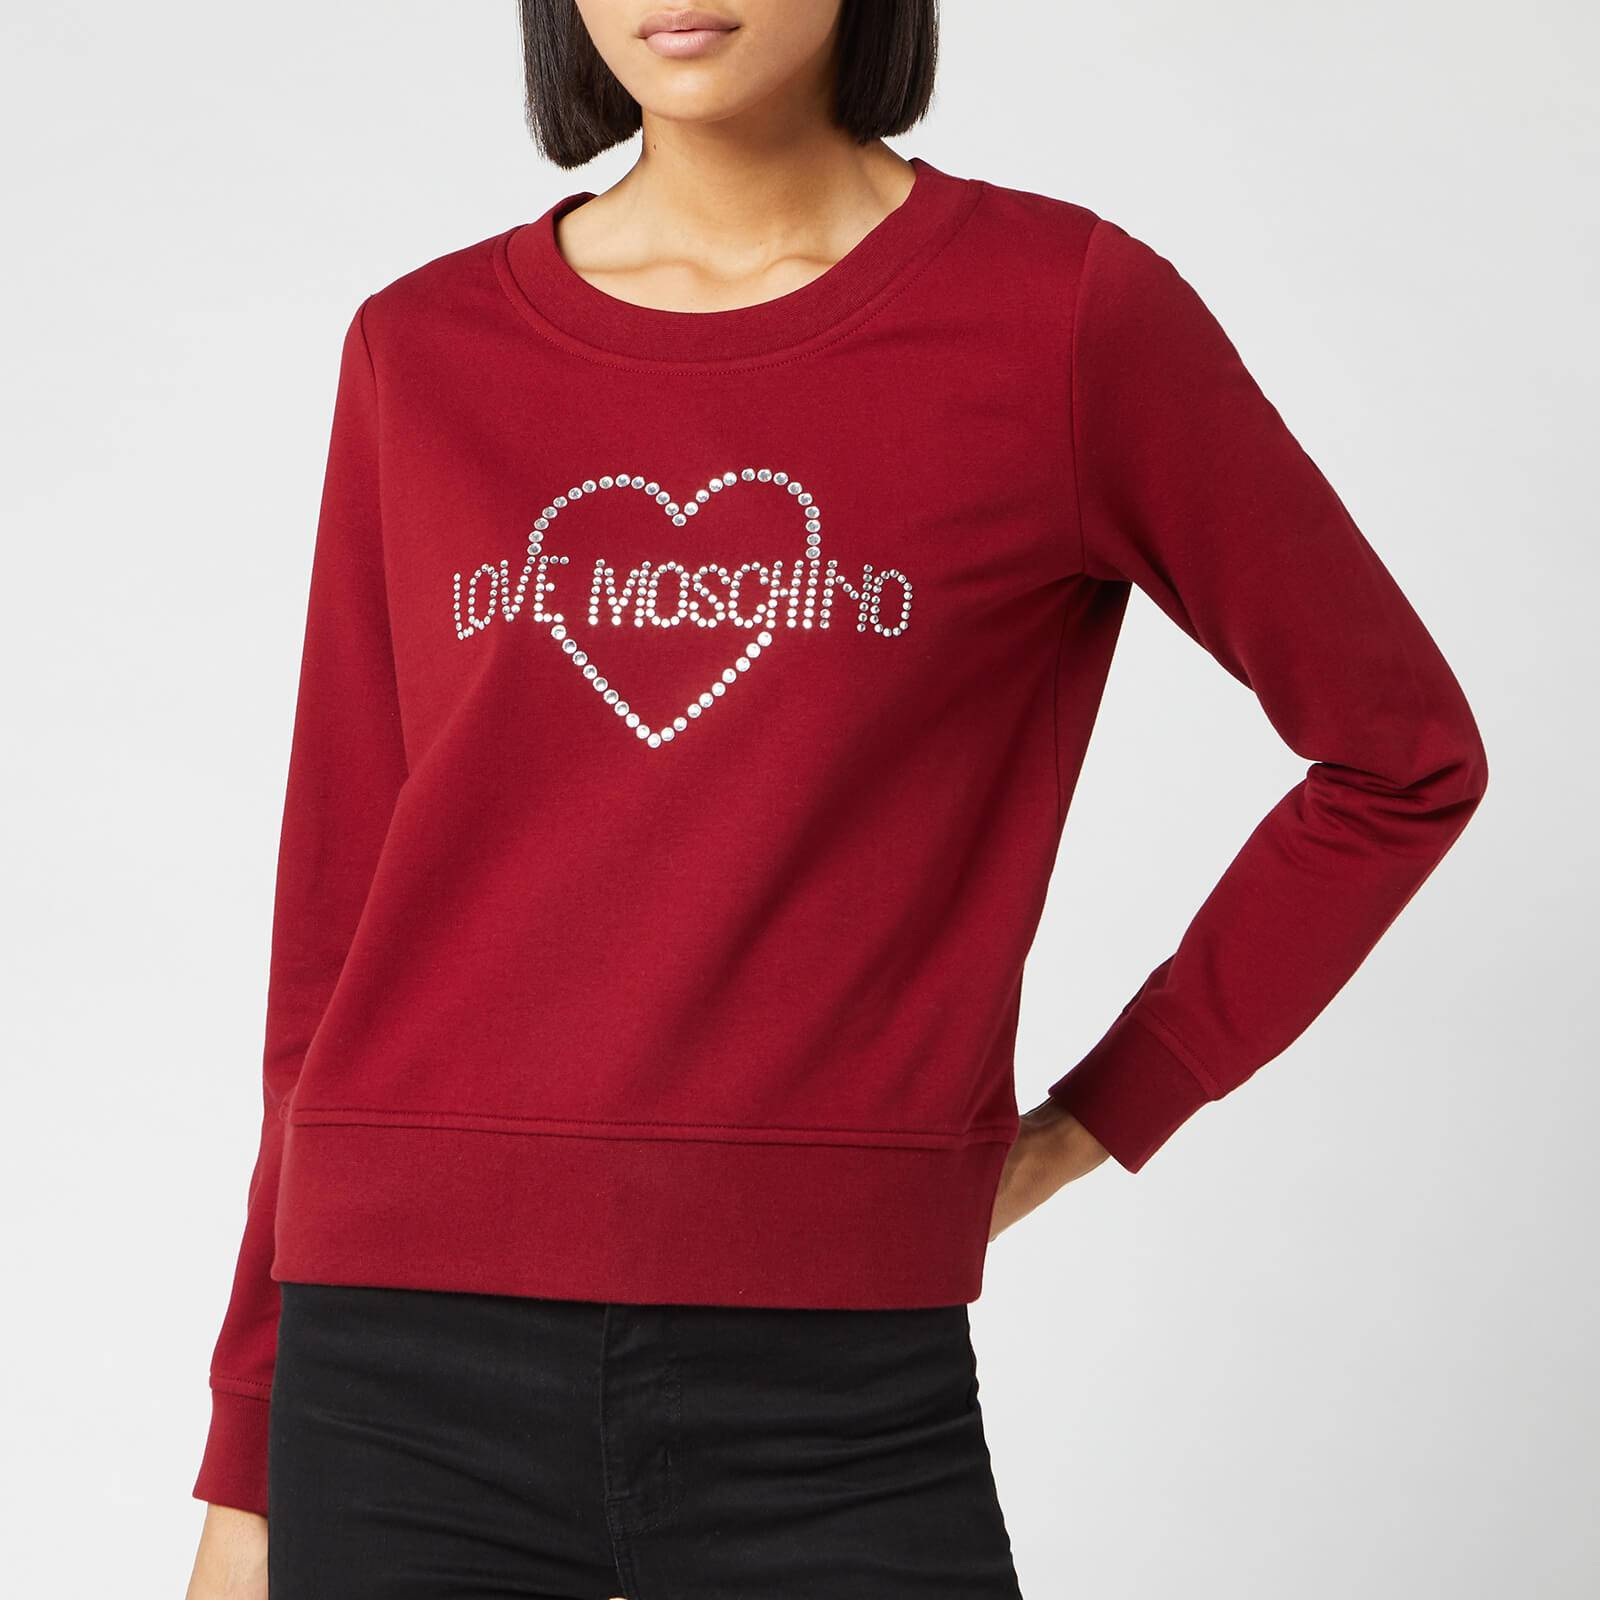 Moschino Love Moschino Women's Crystal Logo Sweater - Red - IT 38/UK 6 - Red